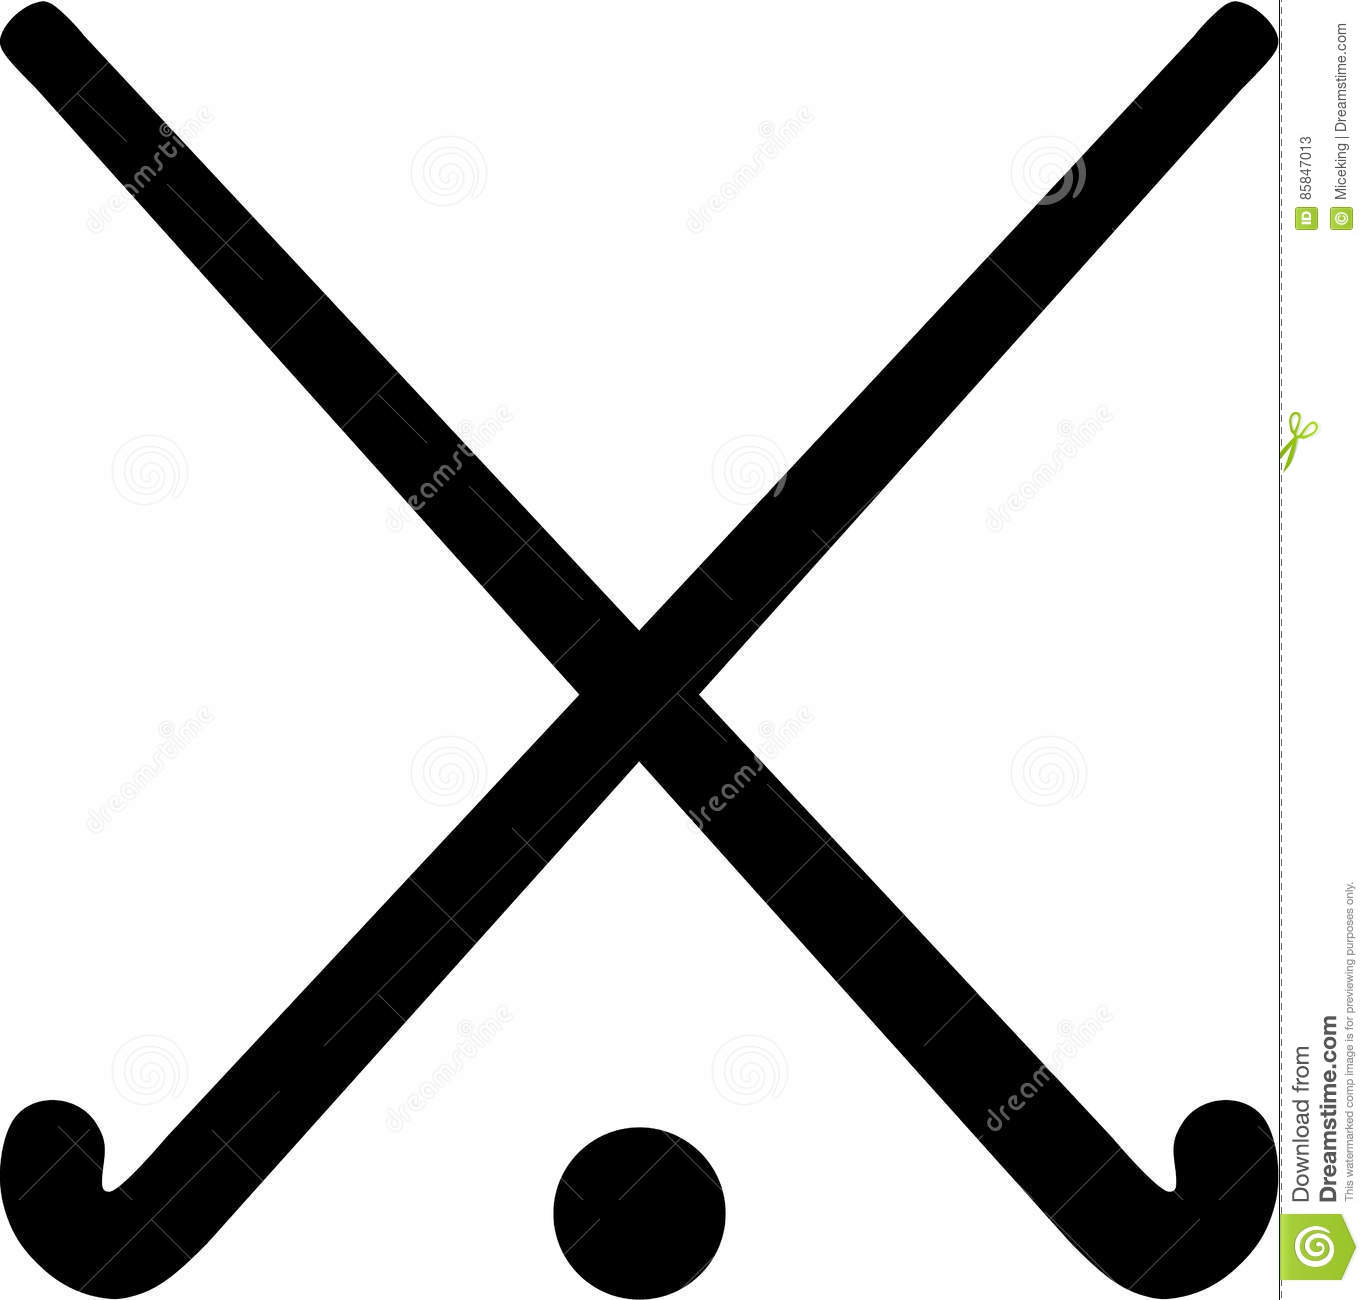 881b82a9c3b9 Field Hockey Sticks With Ball Stock Vector - Illustration of crossed ...